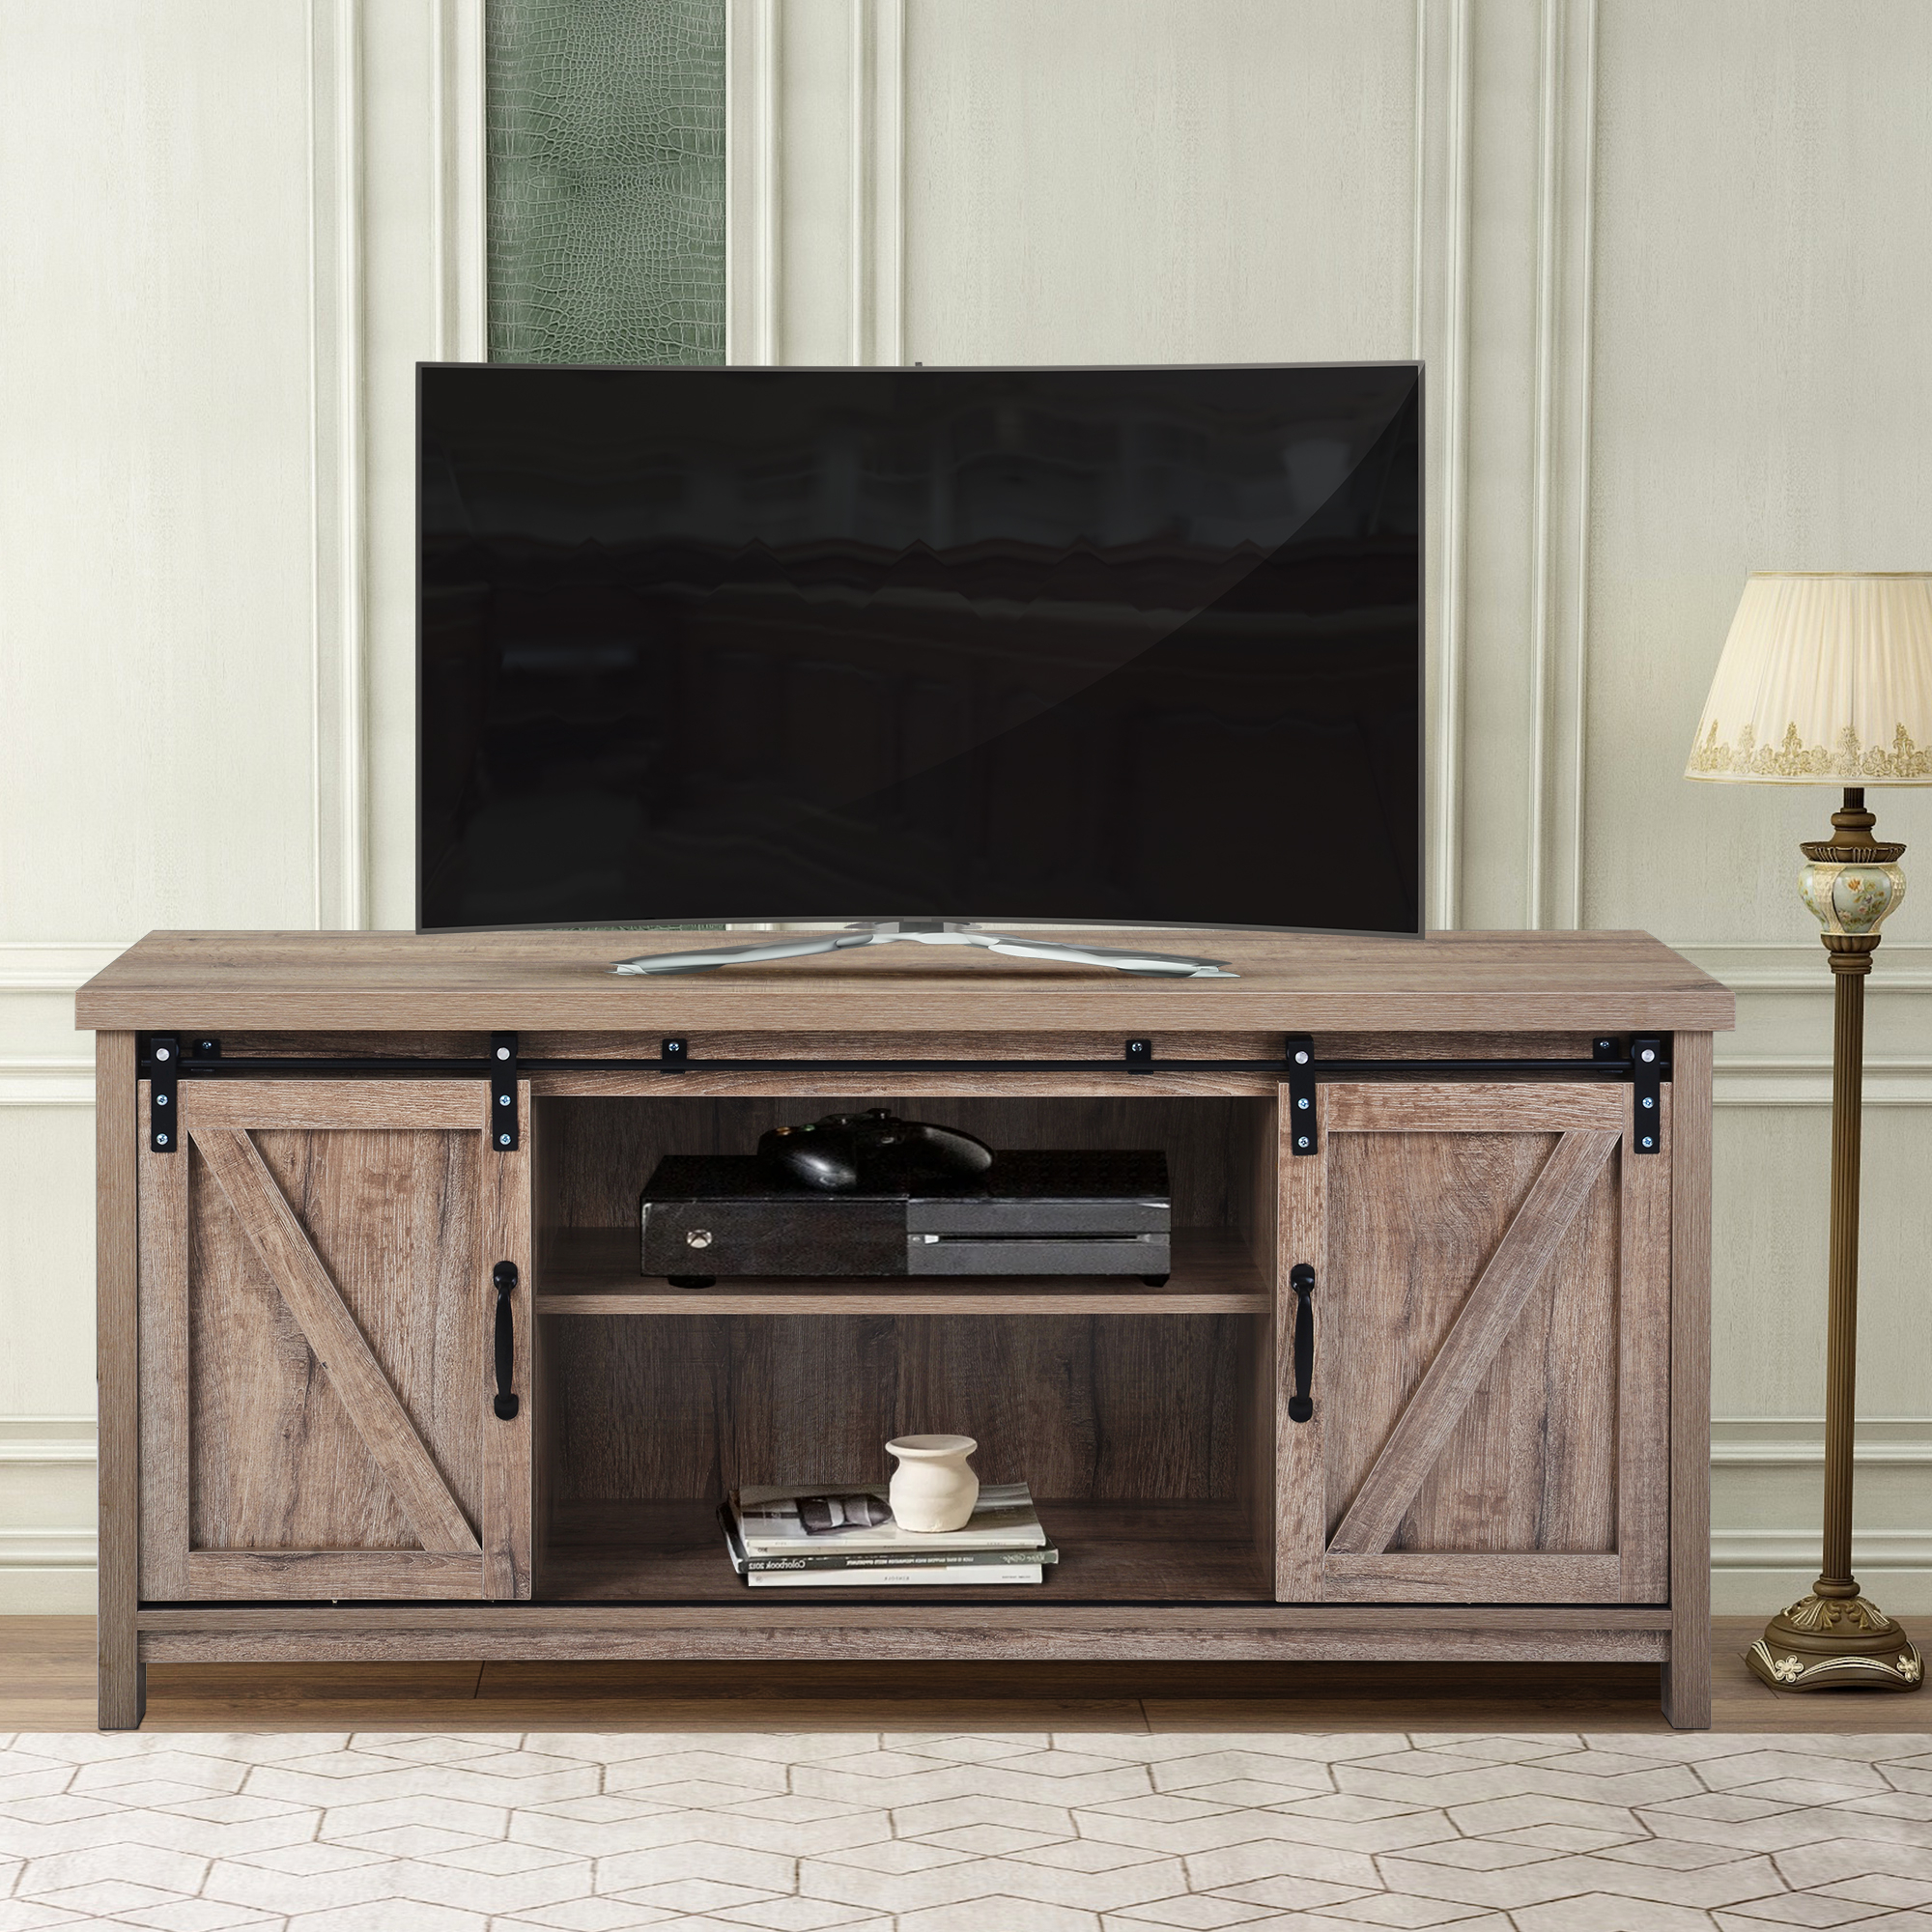 Wood Tv Stand, Modern Corner Tv Table Stands, Rustic Style Within Modern 2 Glass Door Corner Tv Stands (View 4 of 20)